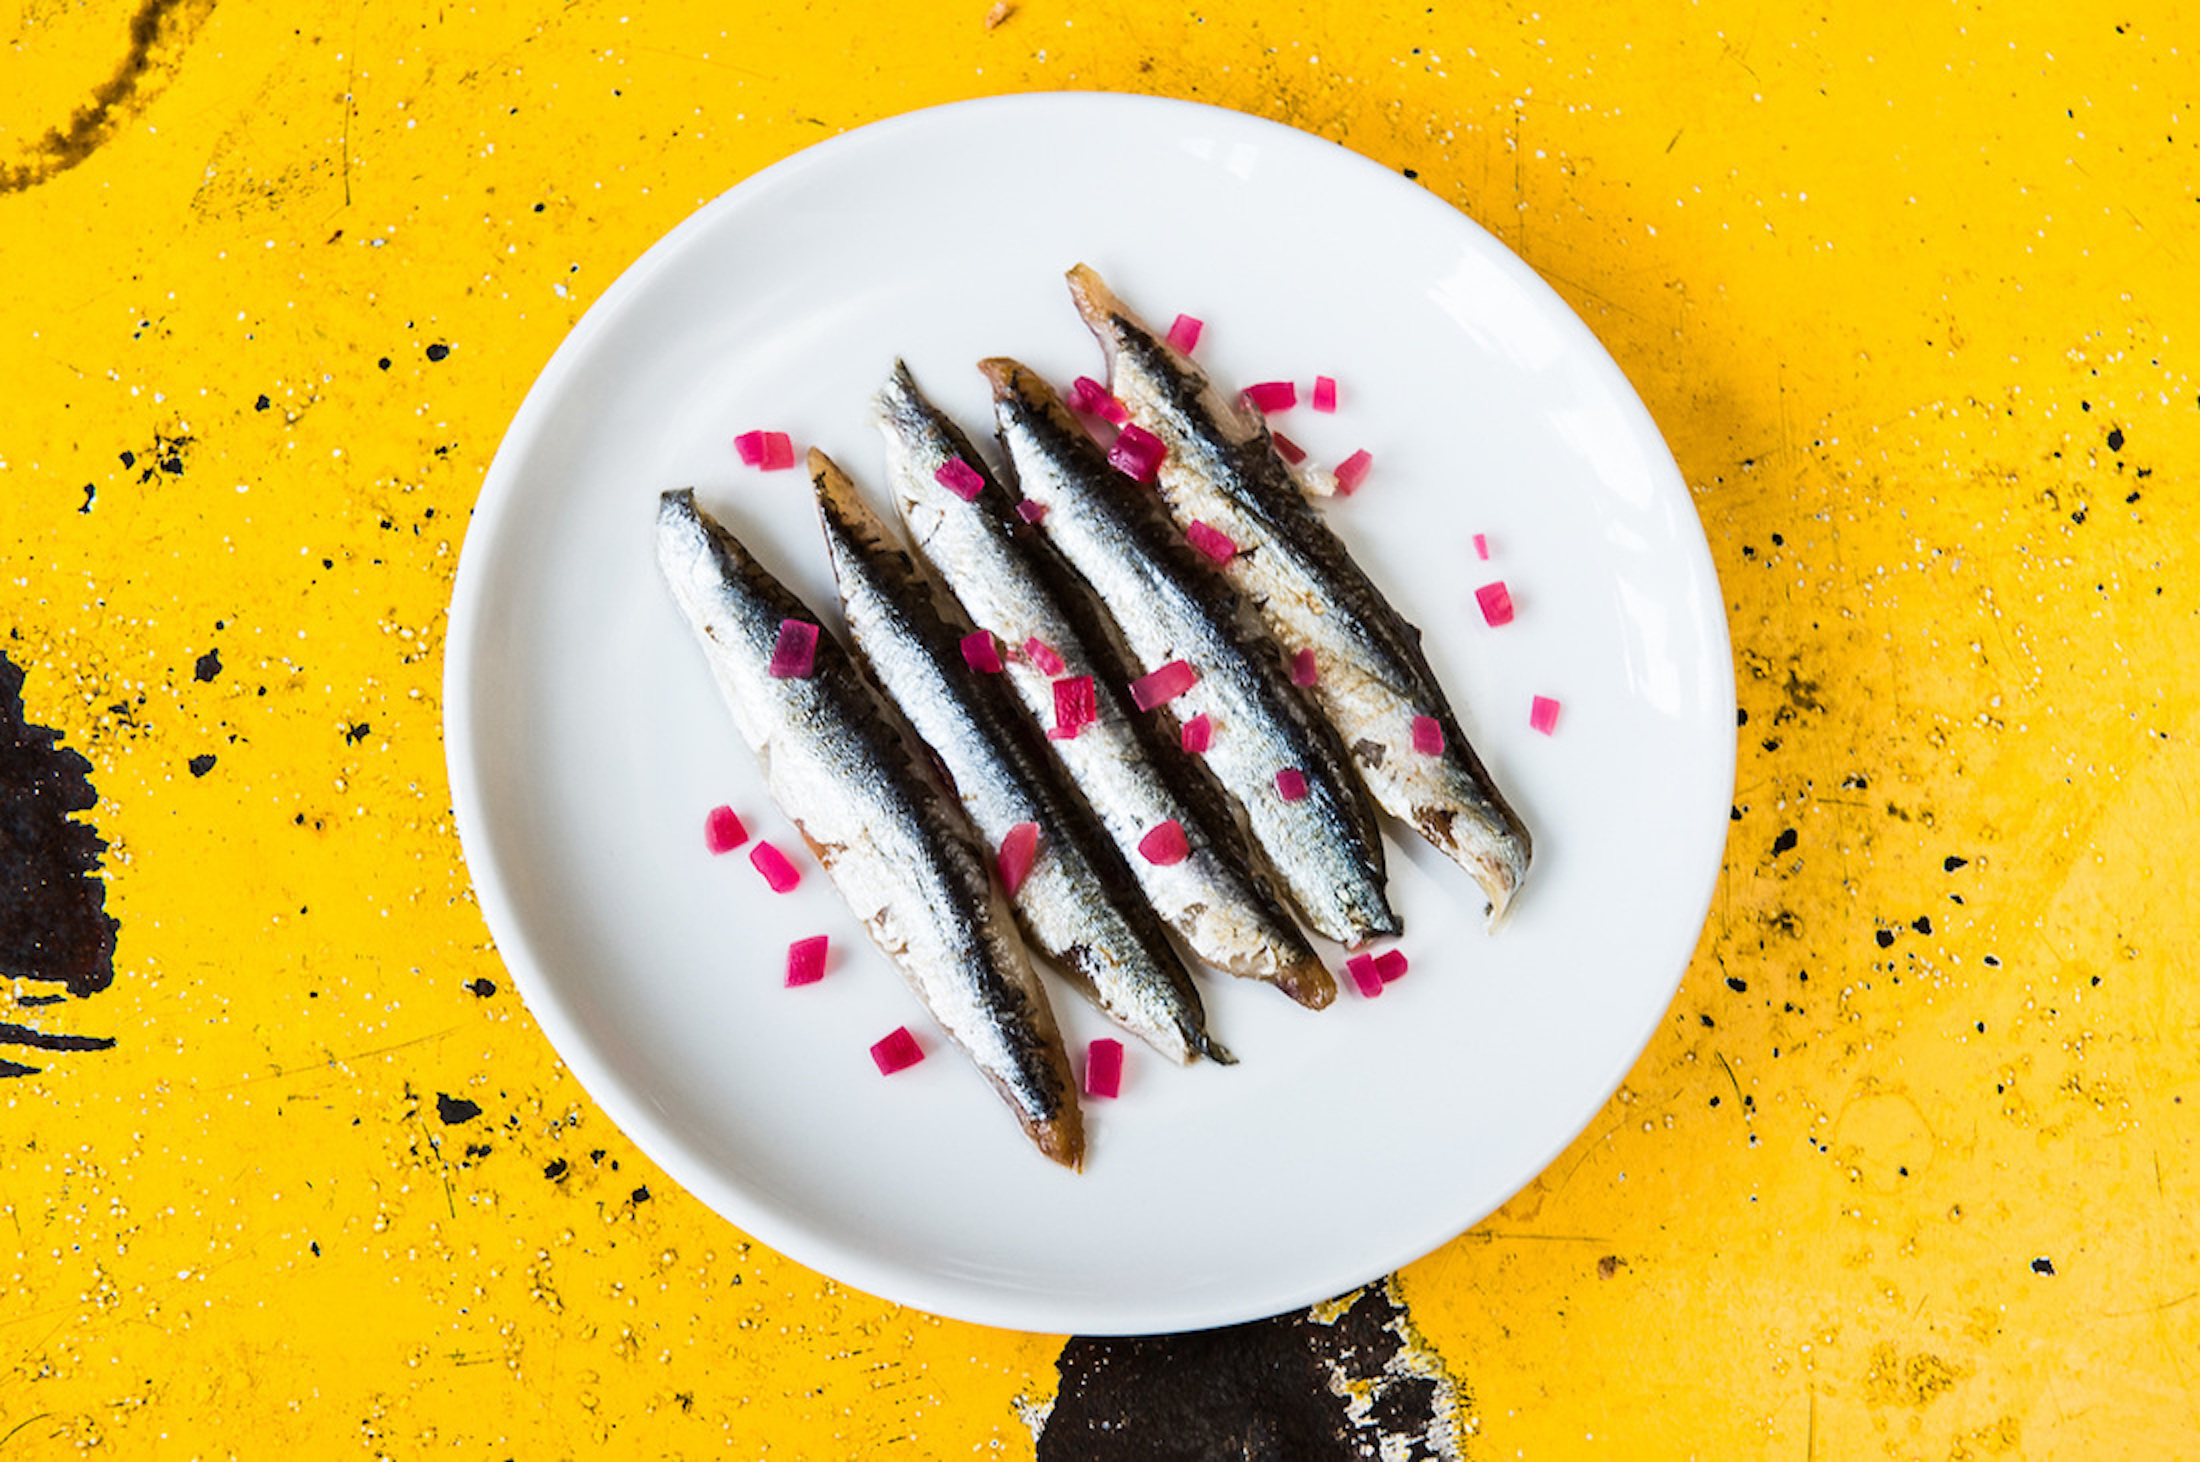 Anchovies on a white plate on a yellow background